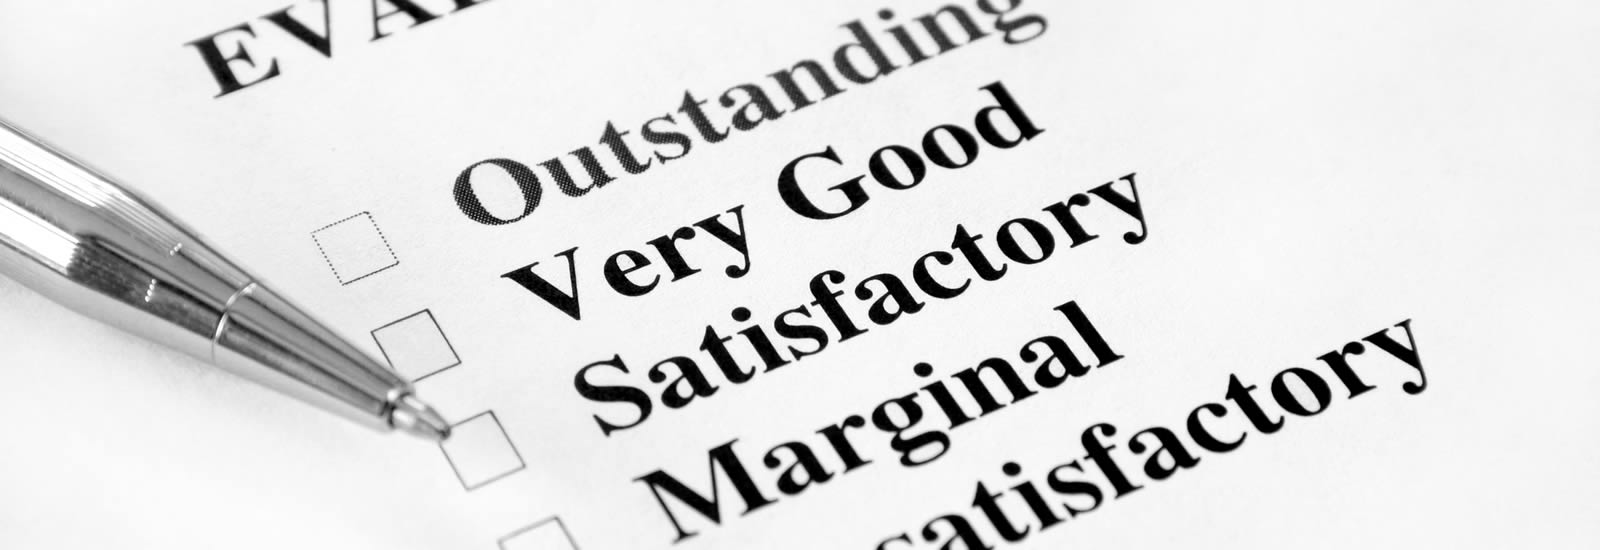 What makes a good evaluation?